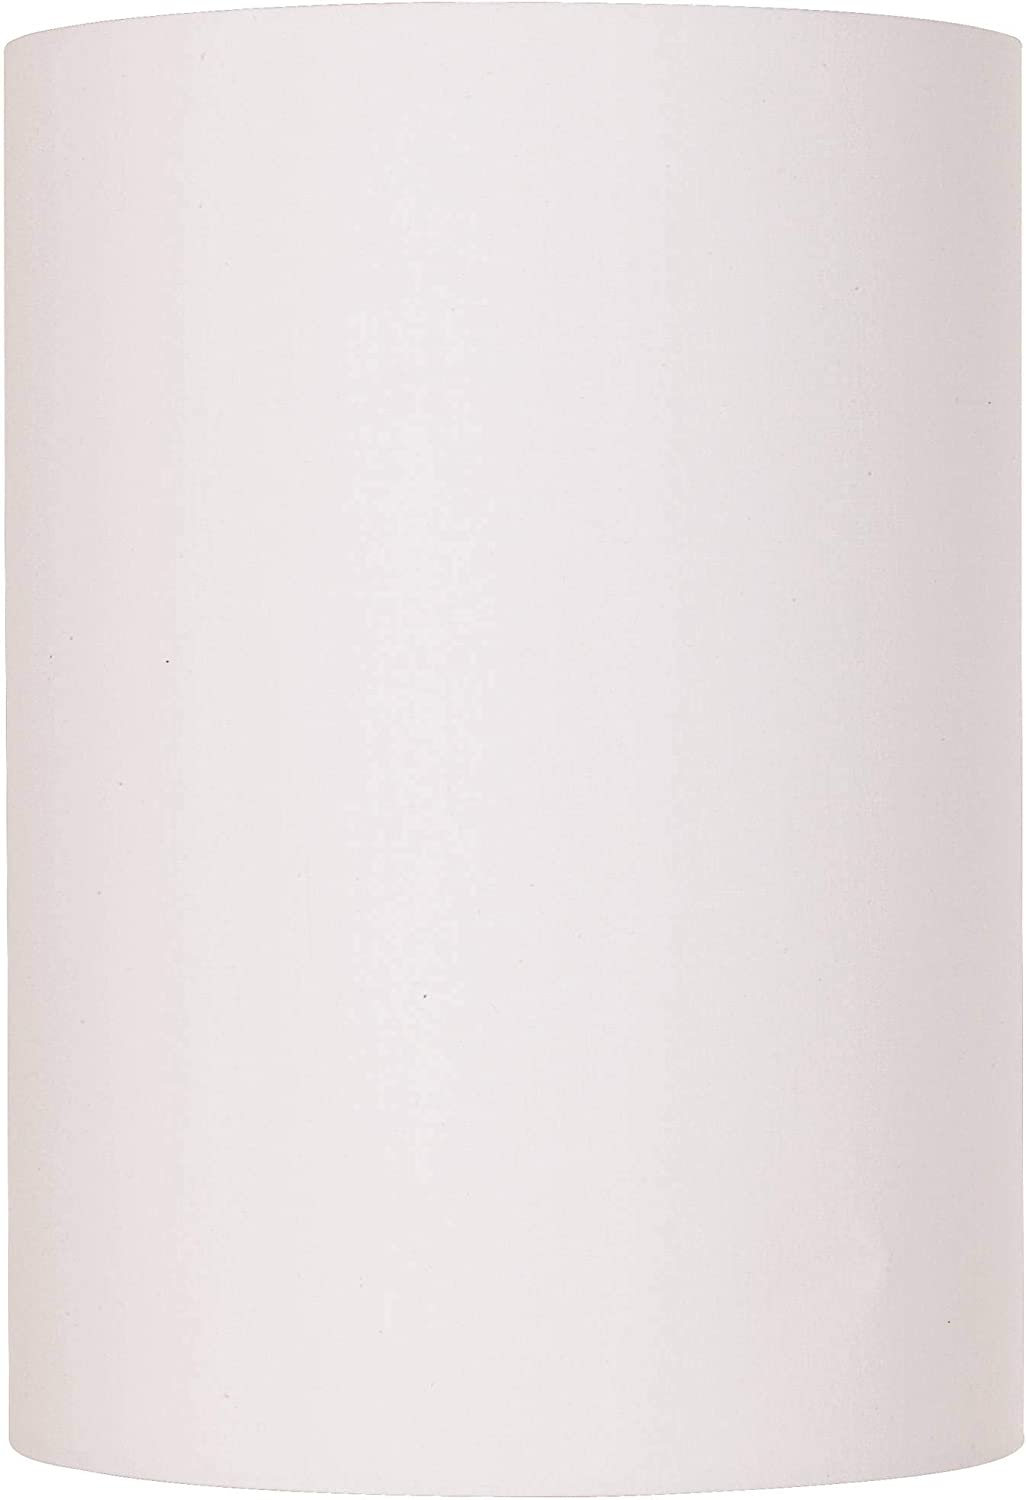 White Cotton Small Drum Cylinder Shade 8x8x11 (Spider) - Brentwood